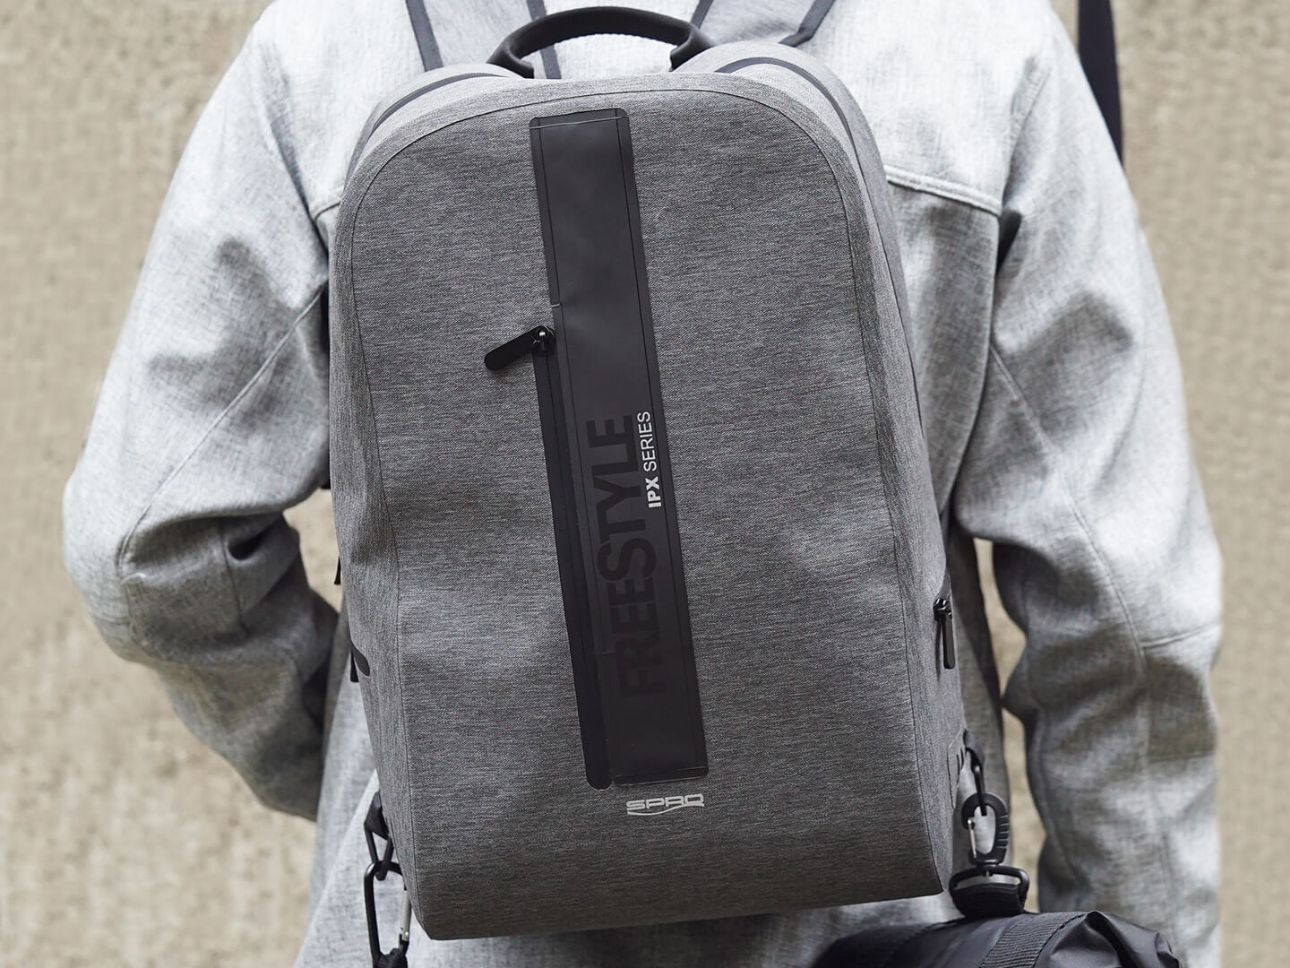 Spro Freestyle IPX Back Pack -